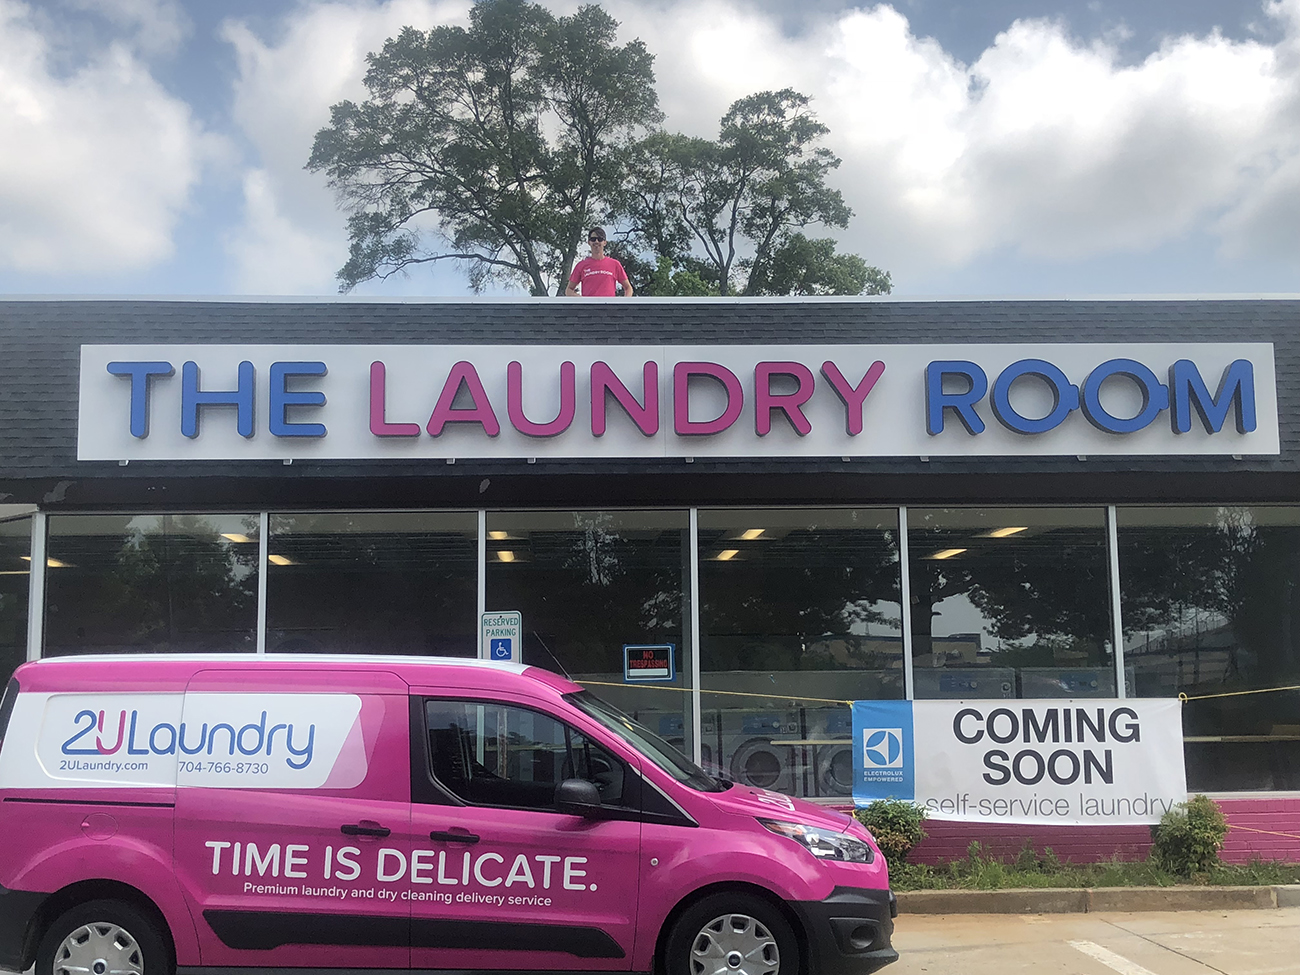 2ULaundry opening a brick-and-mortar laundromat with Electrolux in an old McDonald's space